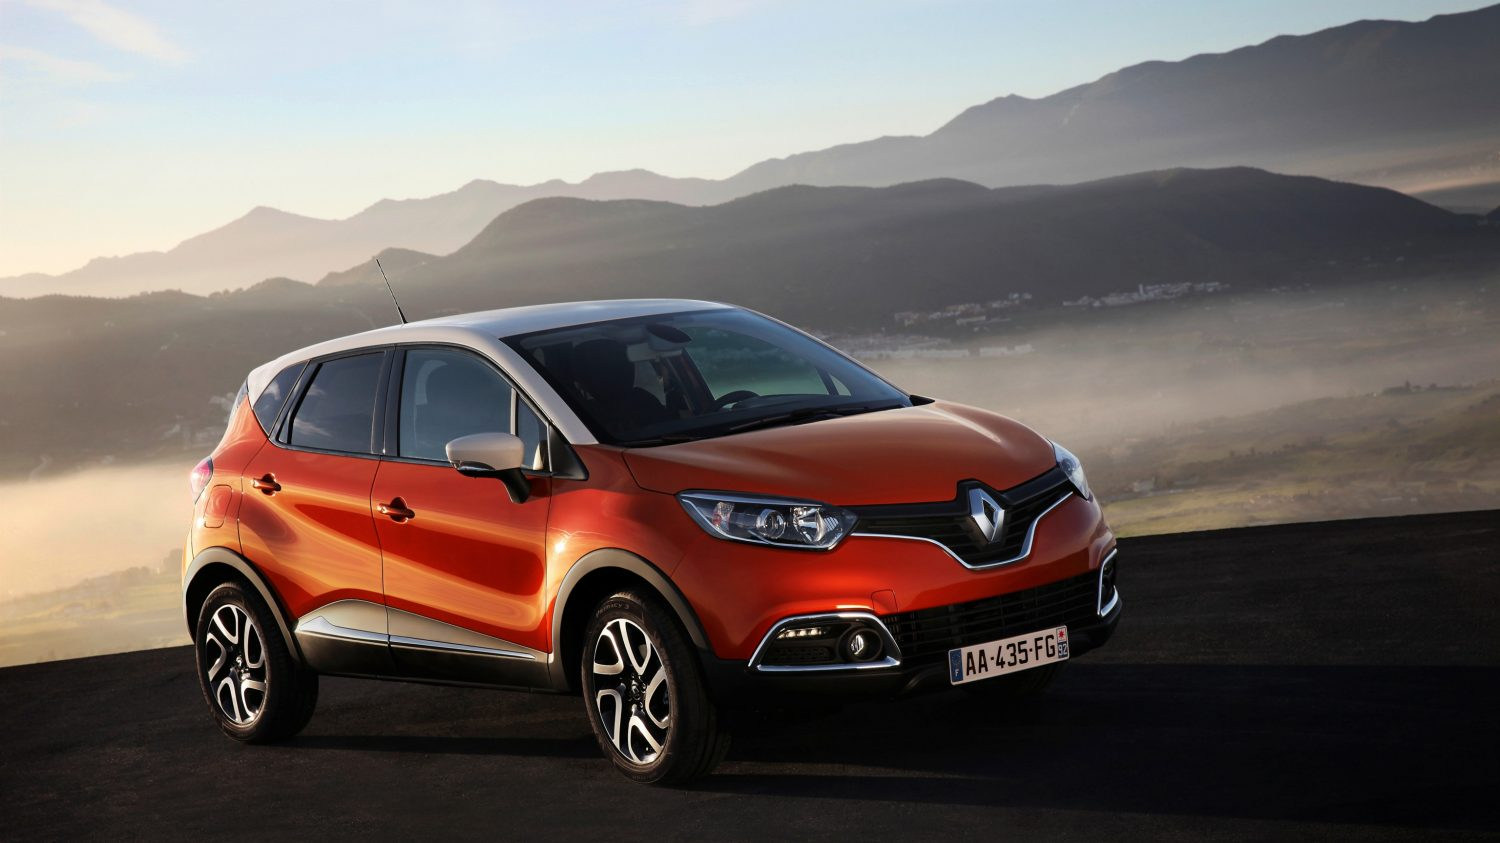 renault-captur-j87-ph1-design-gallery-001.jpg.ximg.l_full_m.smart